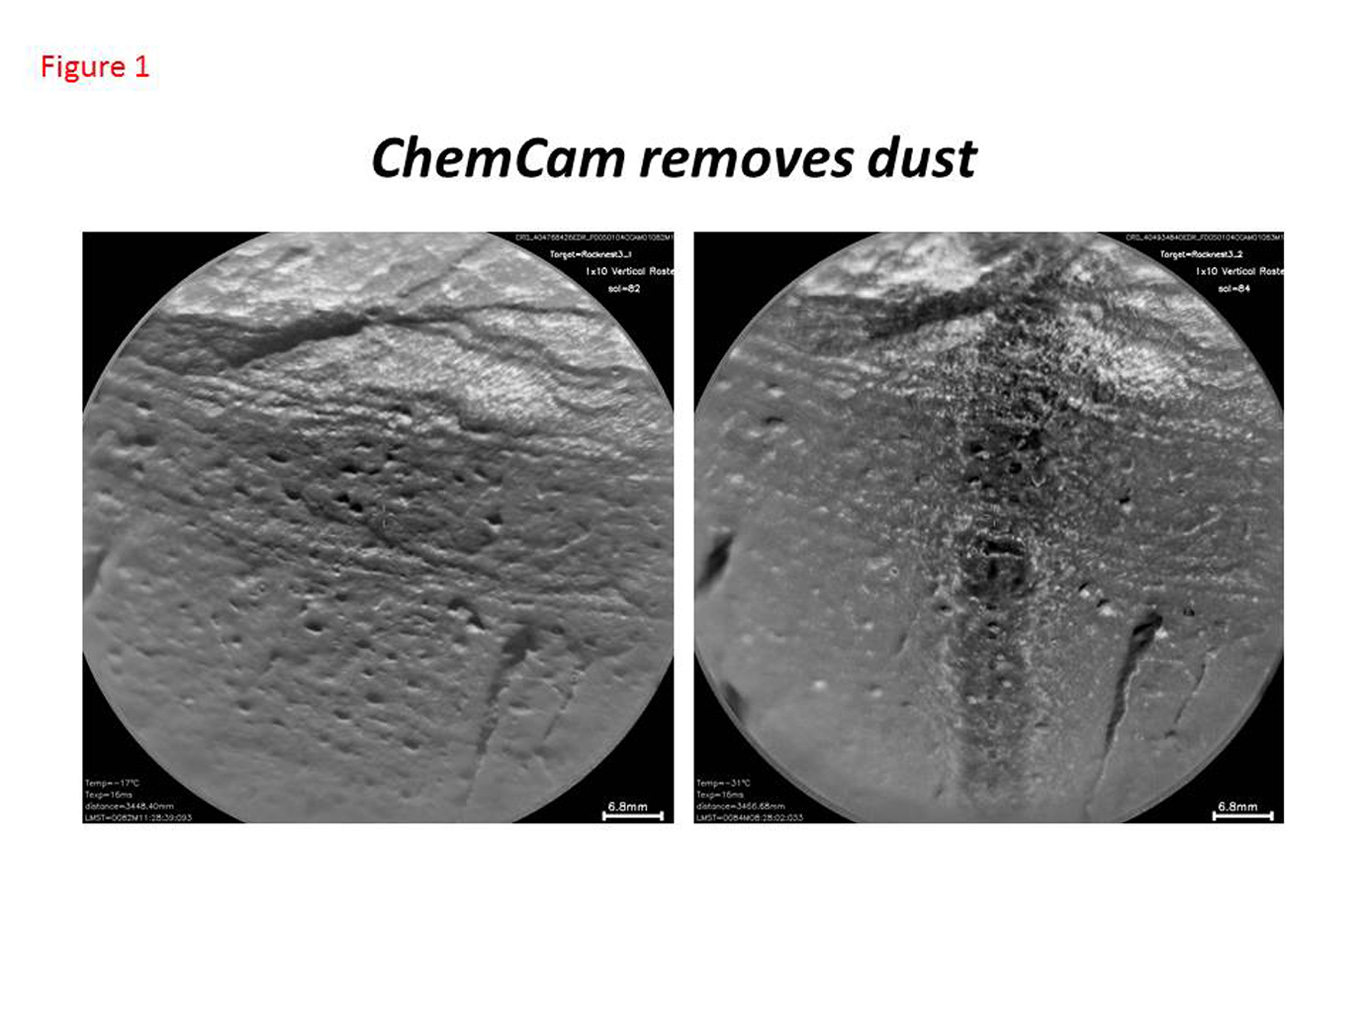 This pair of images taken a few minutes apart show how laser firing by NASA's Mars rover Curiosity removes dust from the surface of a rock. The images were taken by the remote micro-imager camera in the laser-firing Chemistry and Camera (ChemCam).